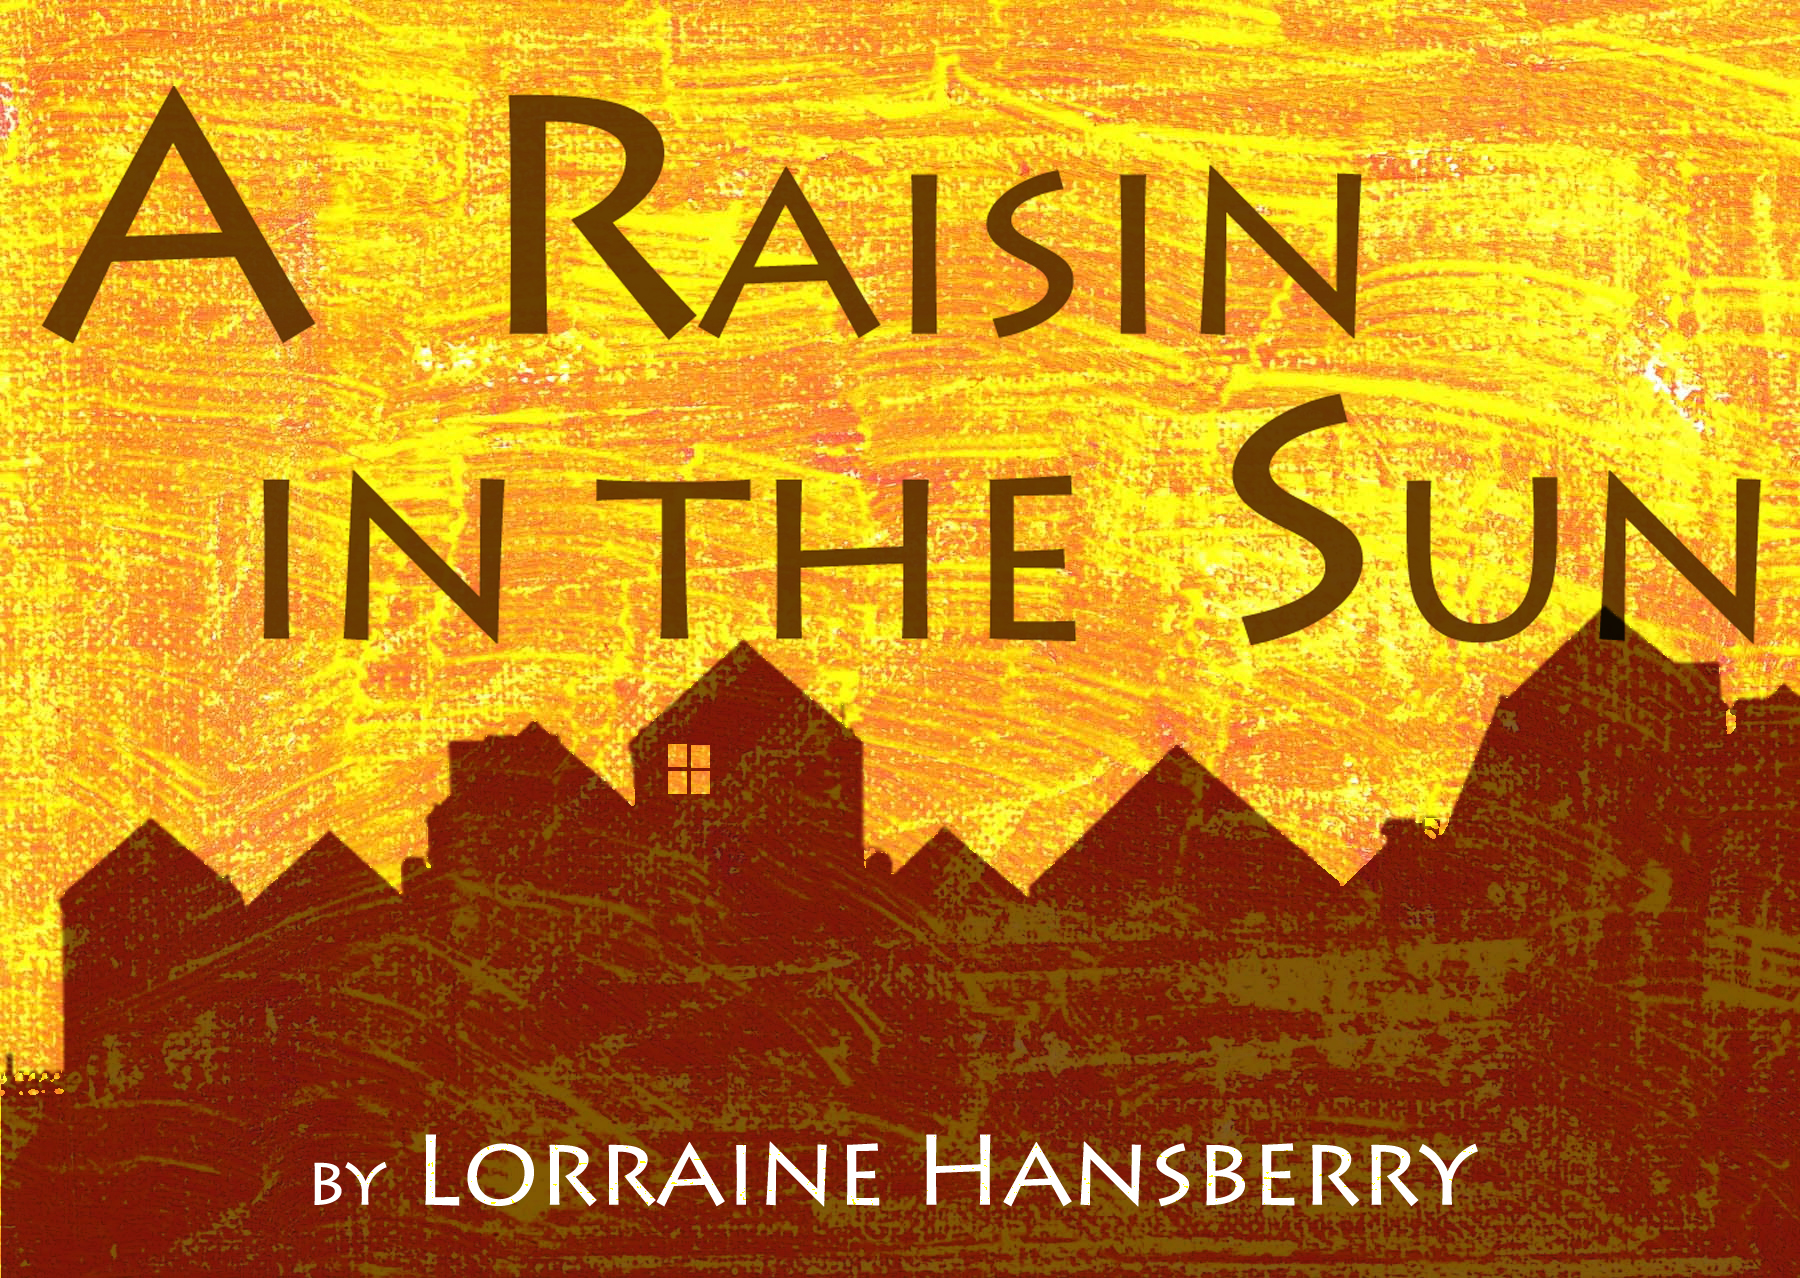 What does the plant represent in the play A Raisin in the Sun?